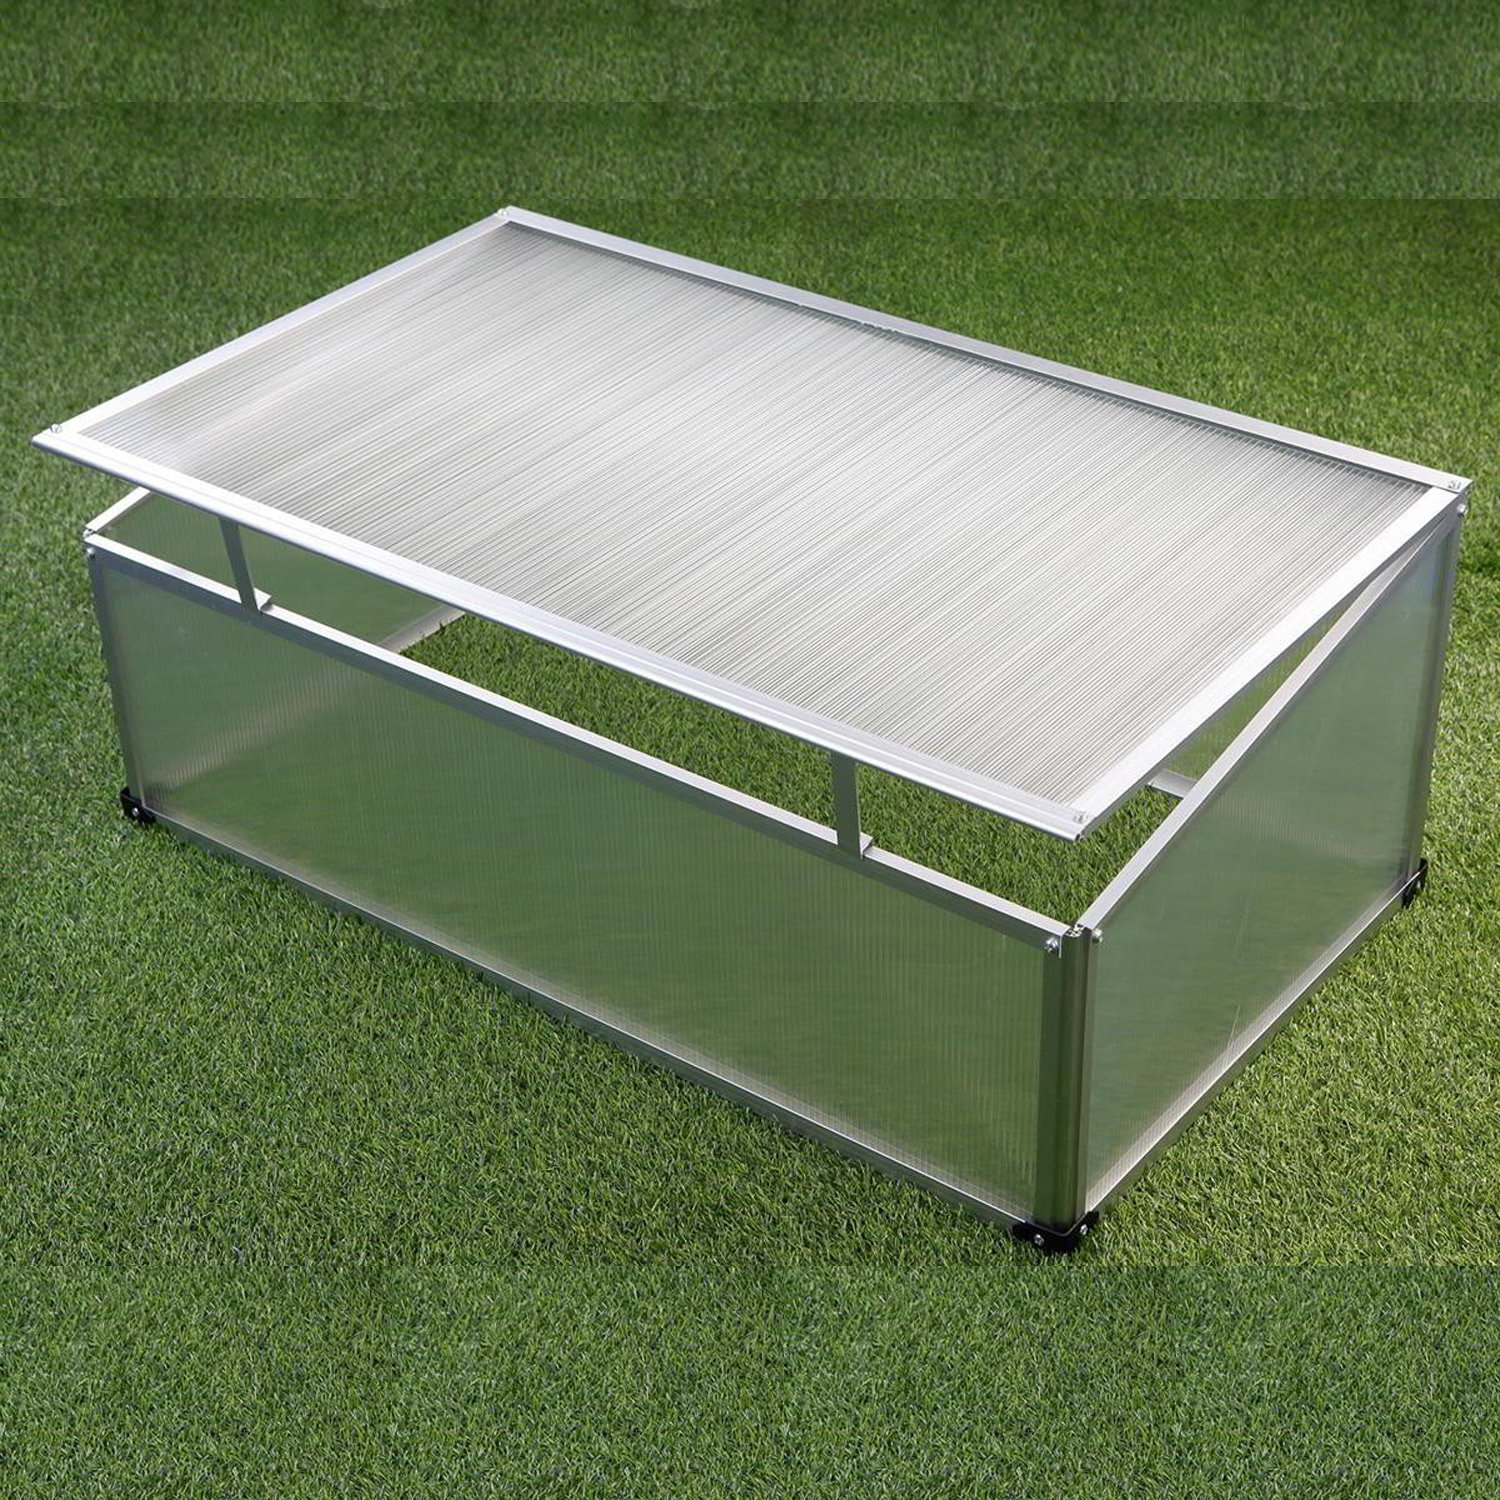 Hotbed hothouse, greenhouse, hotbed box aluminium 120 cm x 80 cm x 40 cm Linder-Exclusiv